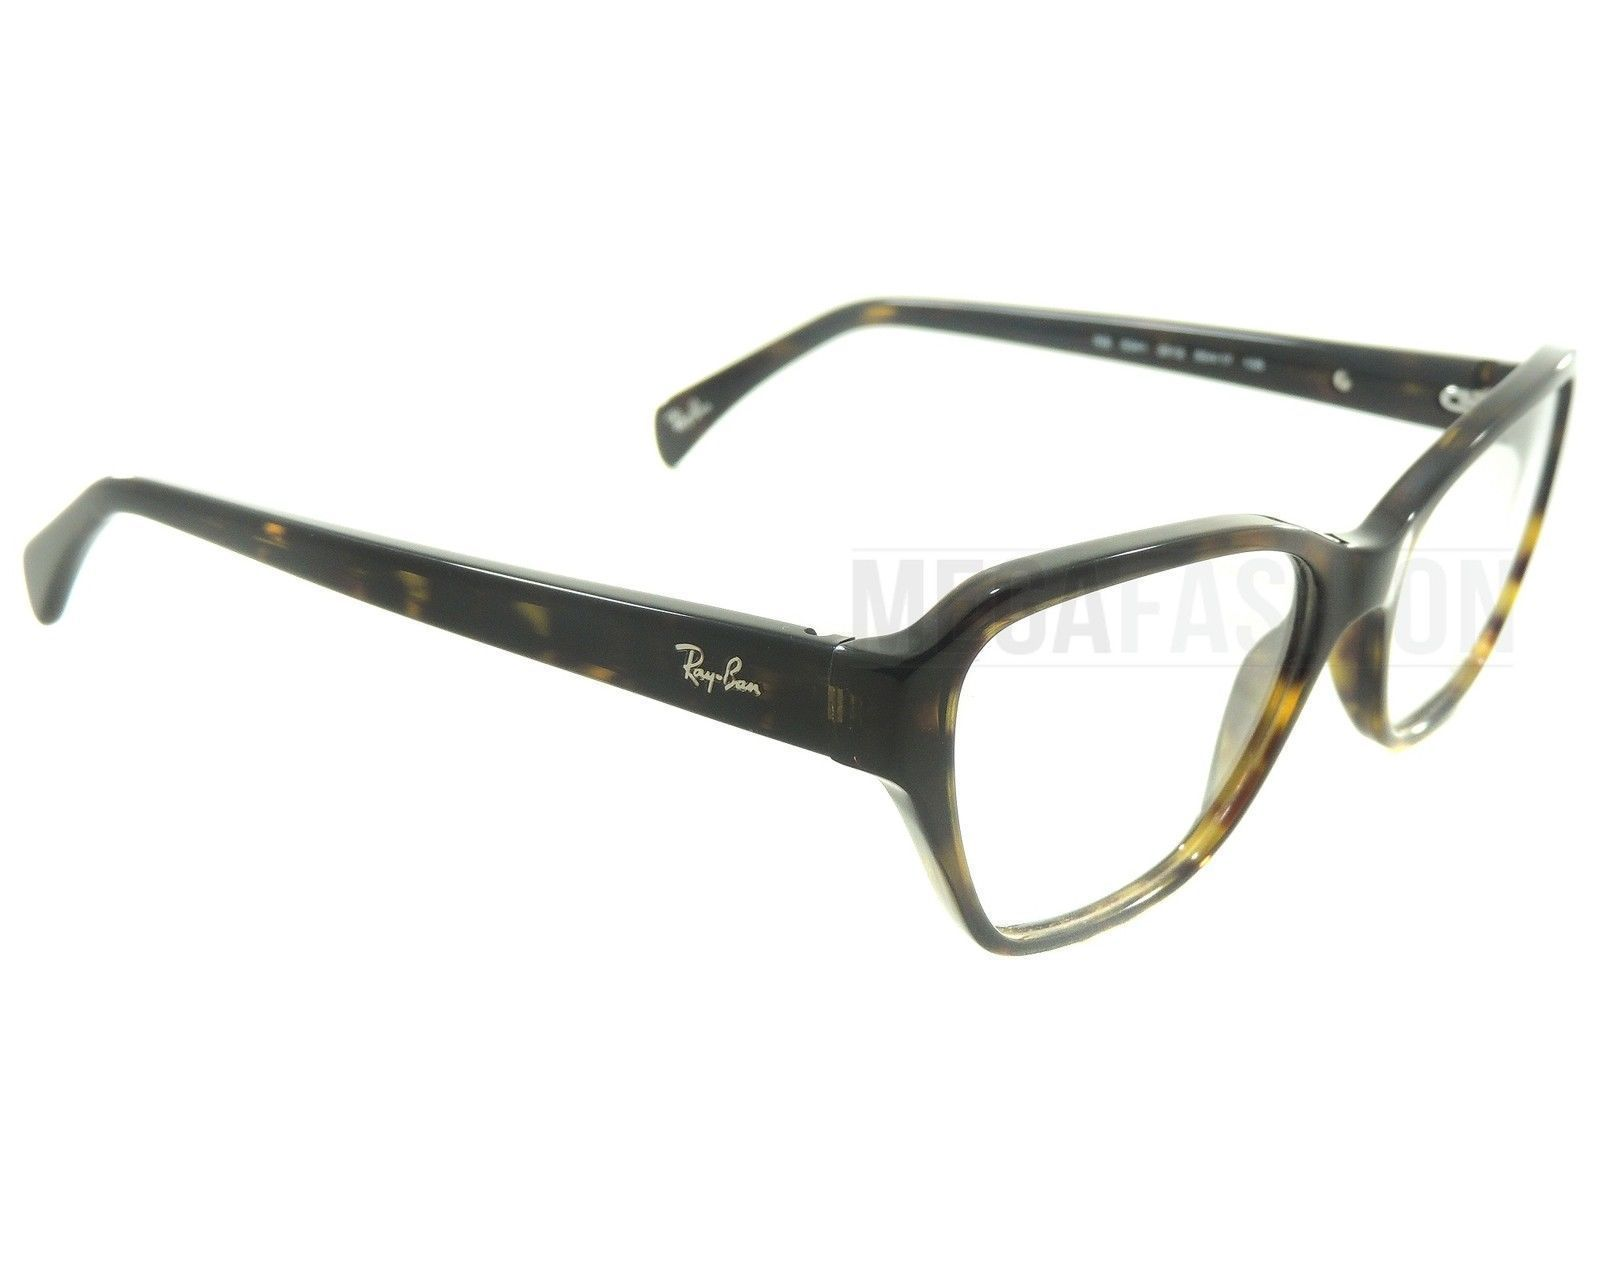 816f6bc312d84 ... New Ray Ban Eyeglasses RB 5341-2012 Glossy Havana Acetate 53 17 135  Authentic